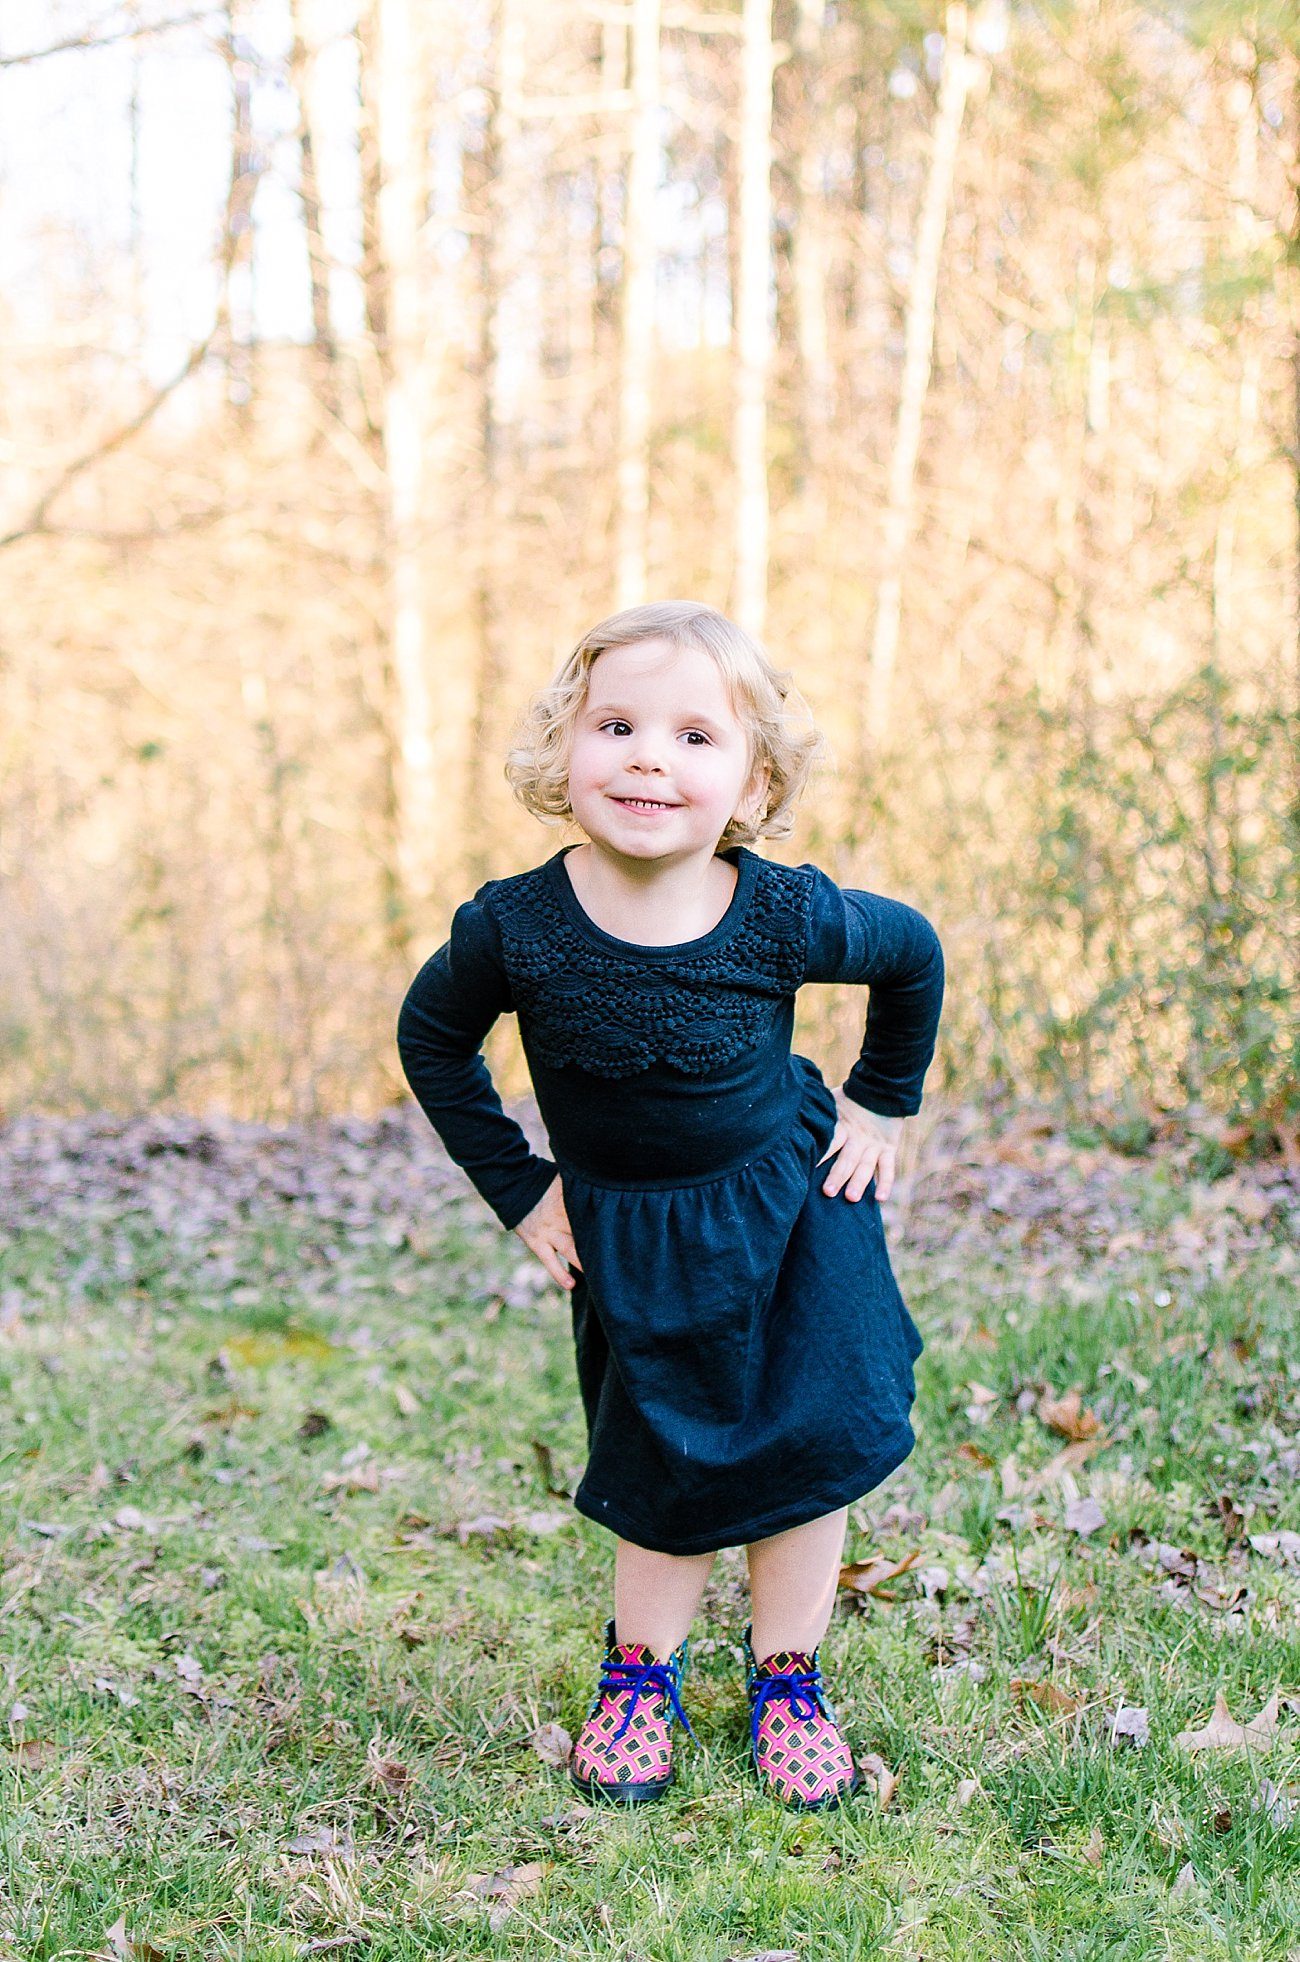 Carter's Kids and Baby Clothing (6)